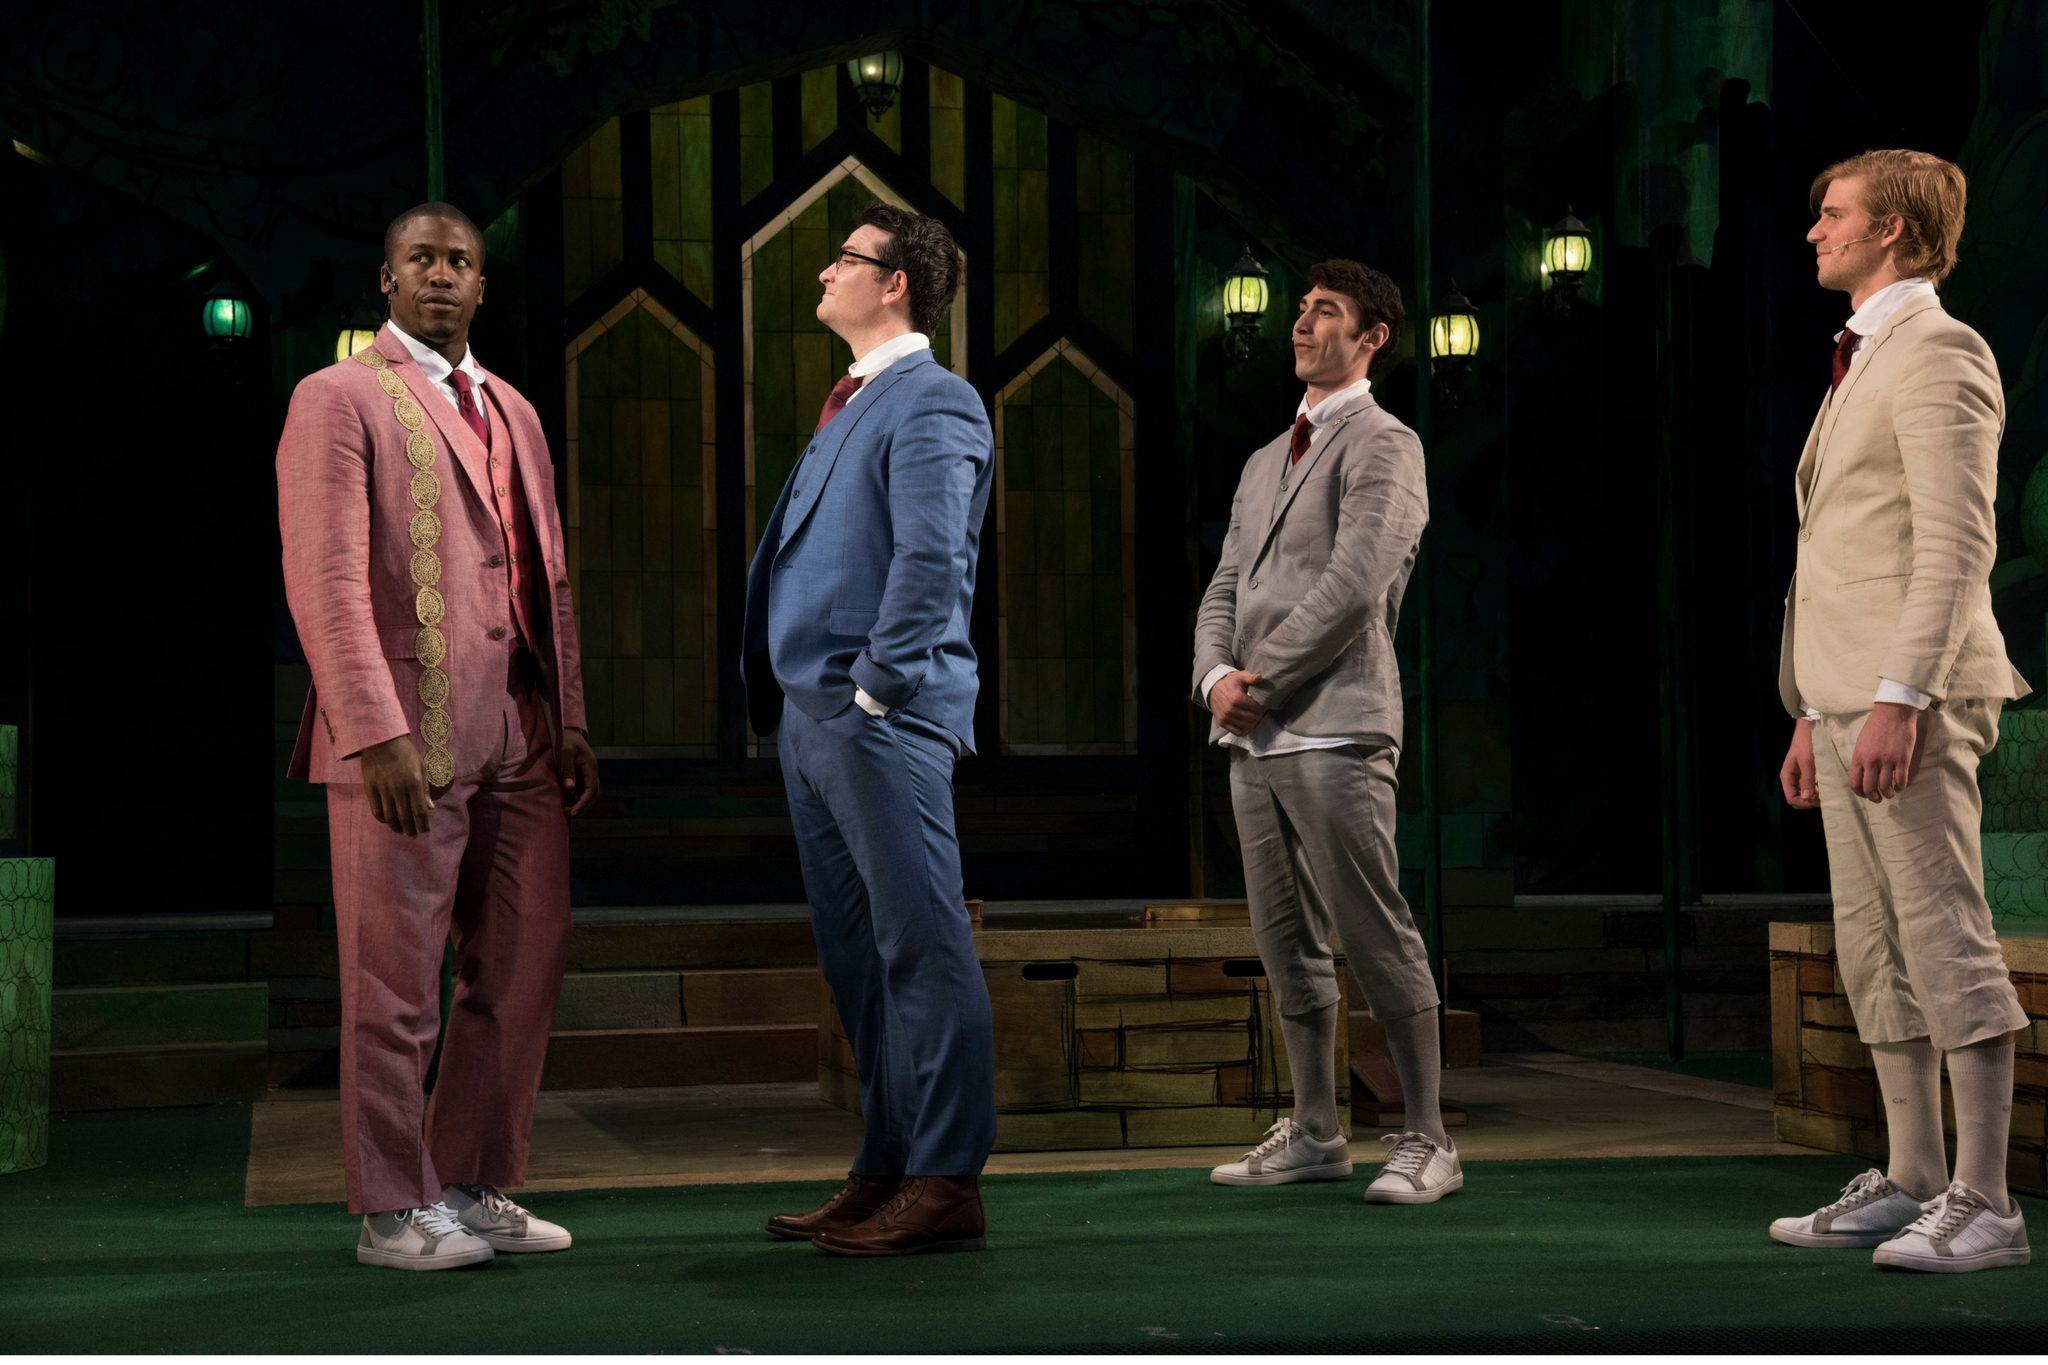 Jason Bowen (Berowne), Justin Blanchard (King of Navarre), Dalton Davis (Longaville), and Nash Hightower (Dumain) Obehi in Love's Labour's Lost, Shakespeare on the Common 2016-Photo by Andrew Brilliant